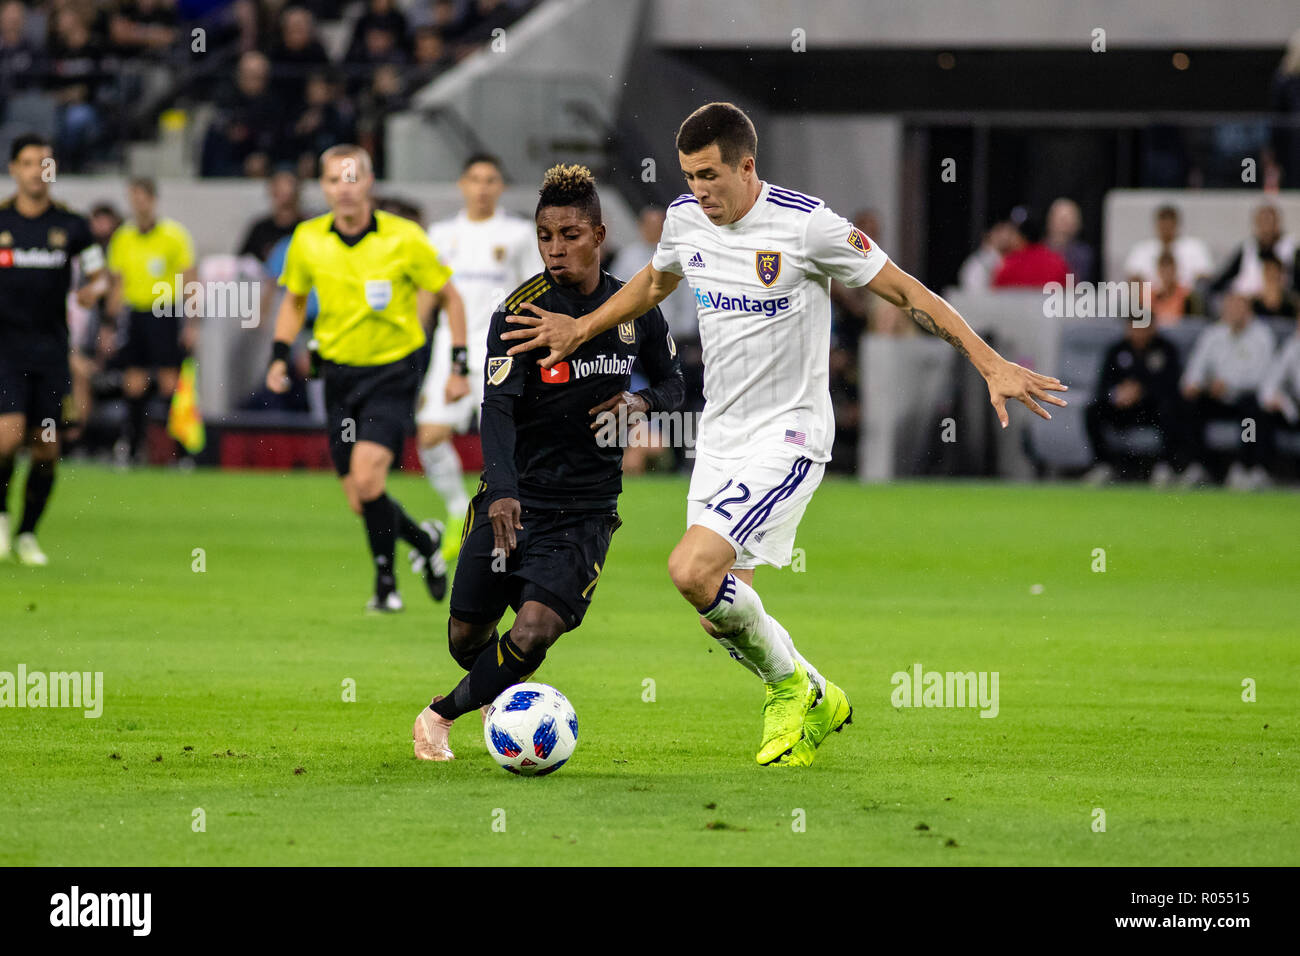 Los Angeles, USA. 1st November 2018. Aaron Herrera (22) holds off Latif Blessing (7) in RSL's win over LAFC in the MLS playoffs. Credit: Ben Nichols/Alamy Live News - Stock Image